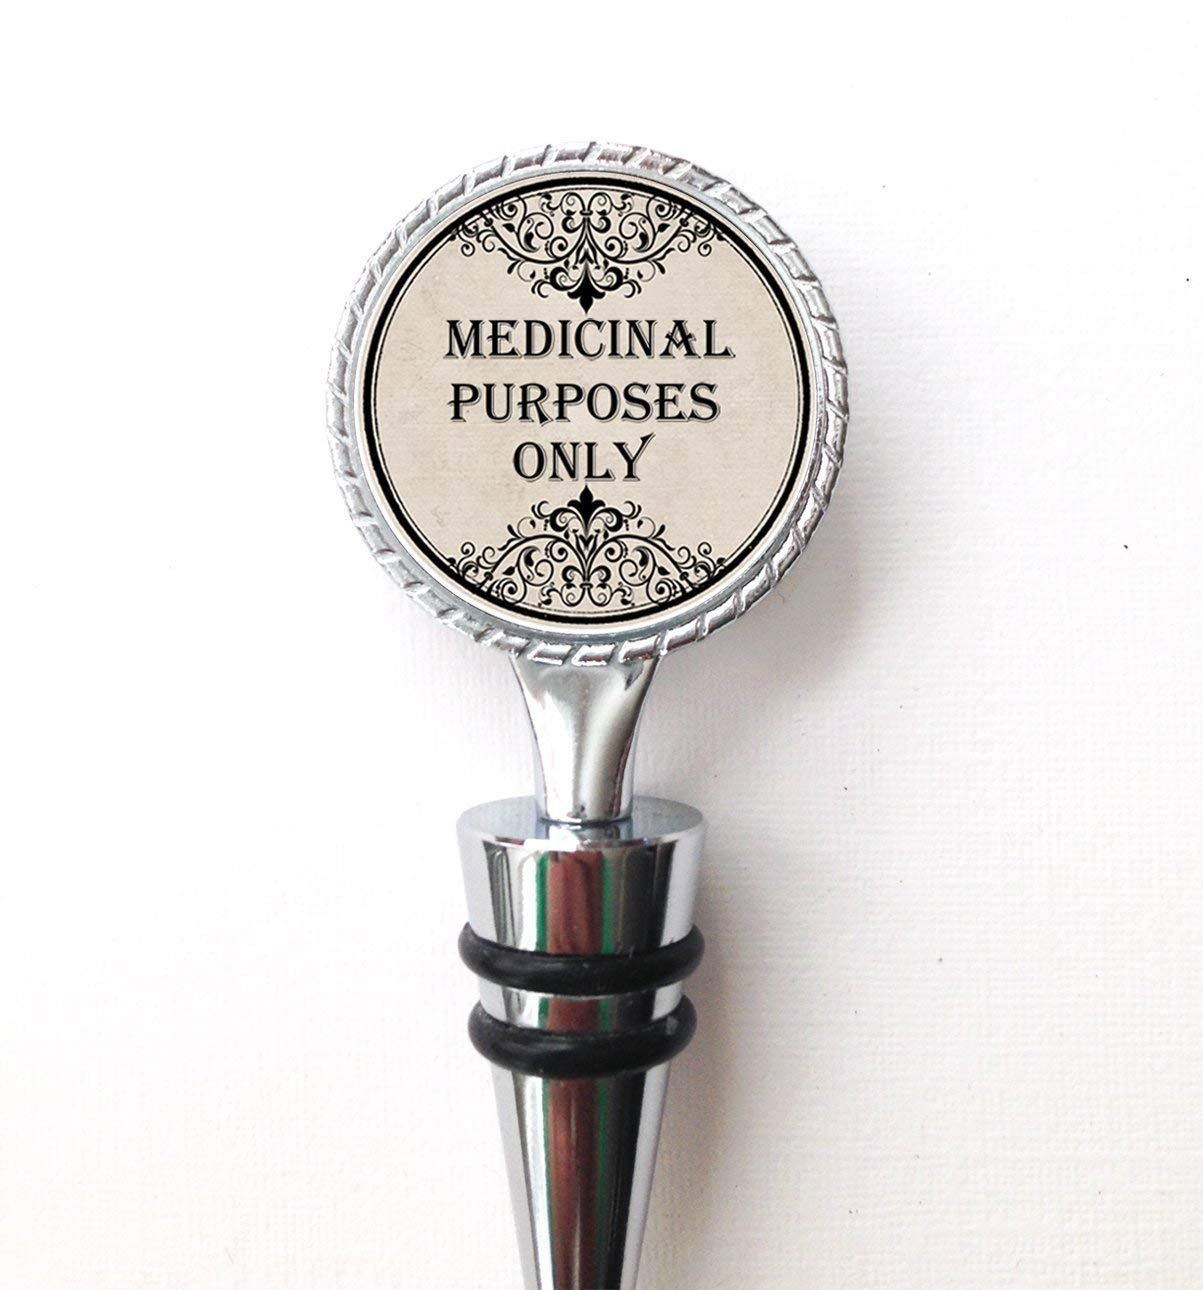 Medicinal Purposes Only Funny Wine Bottle Stopper